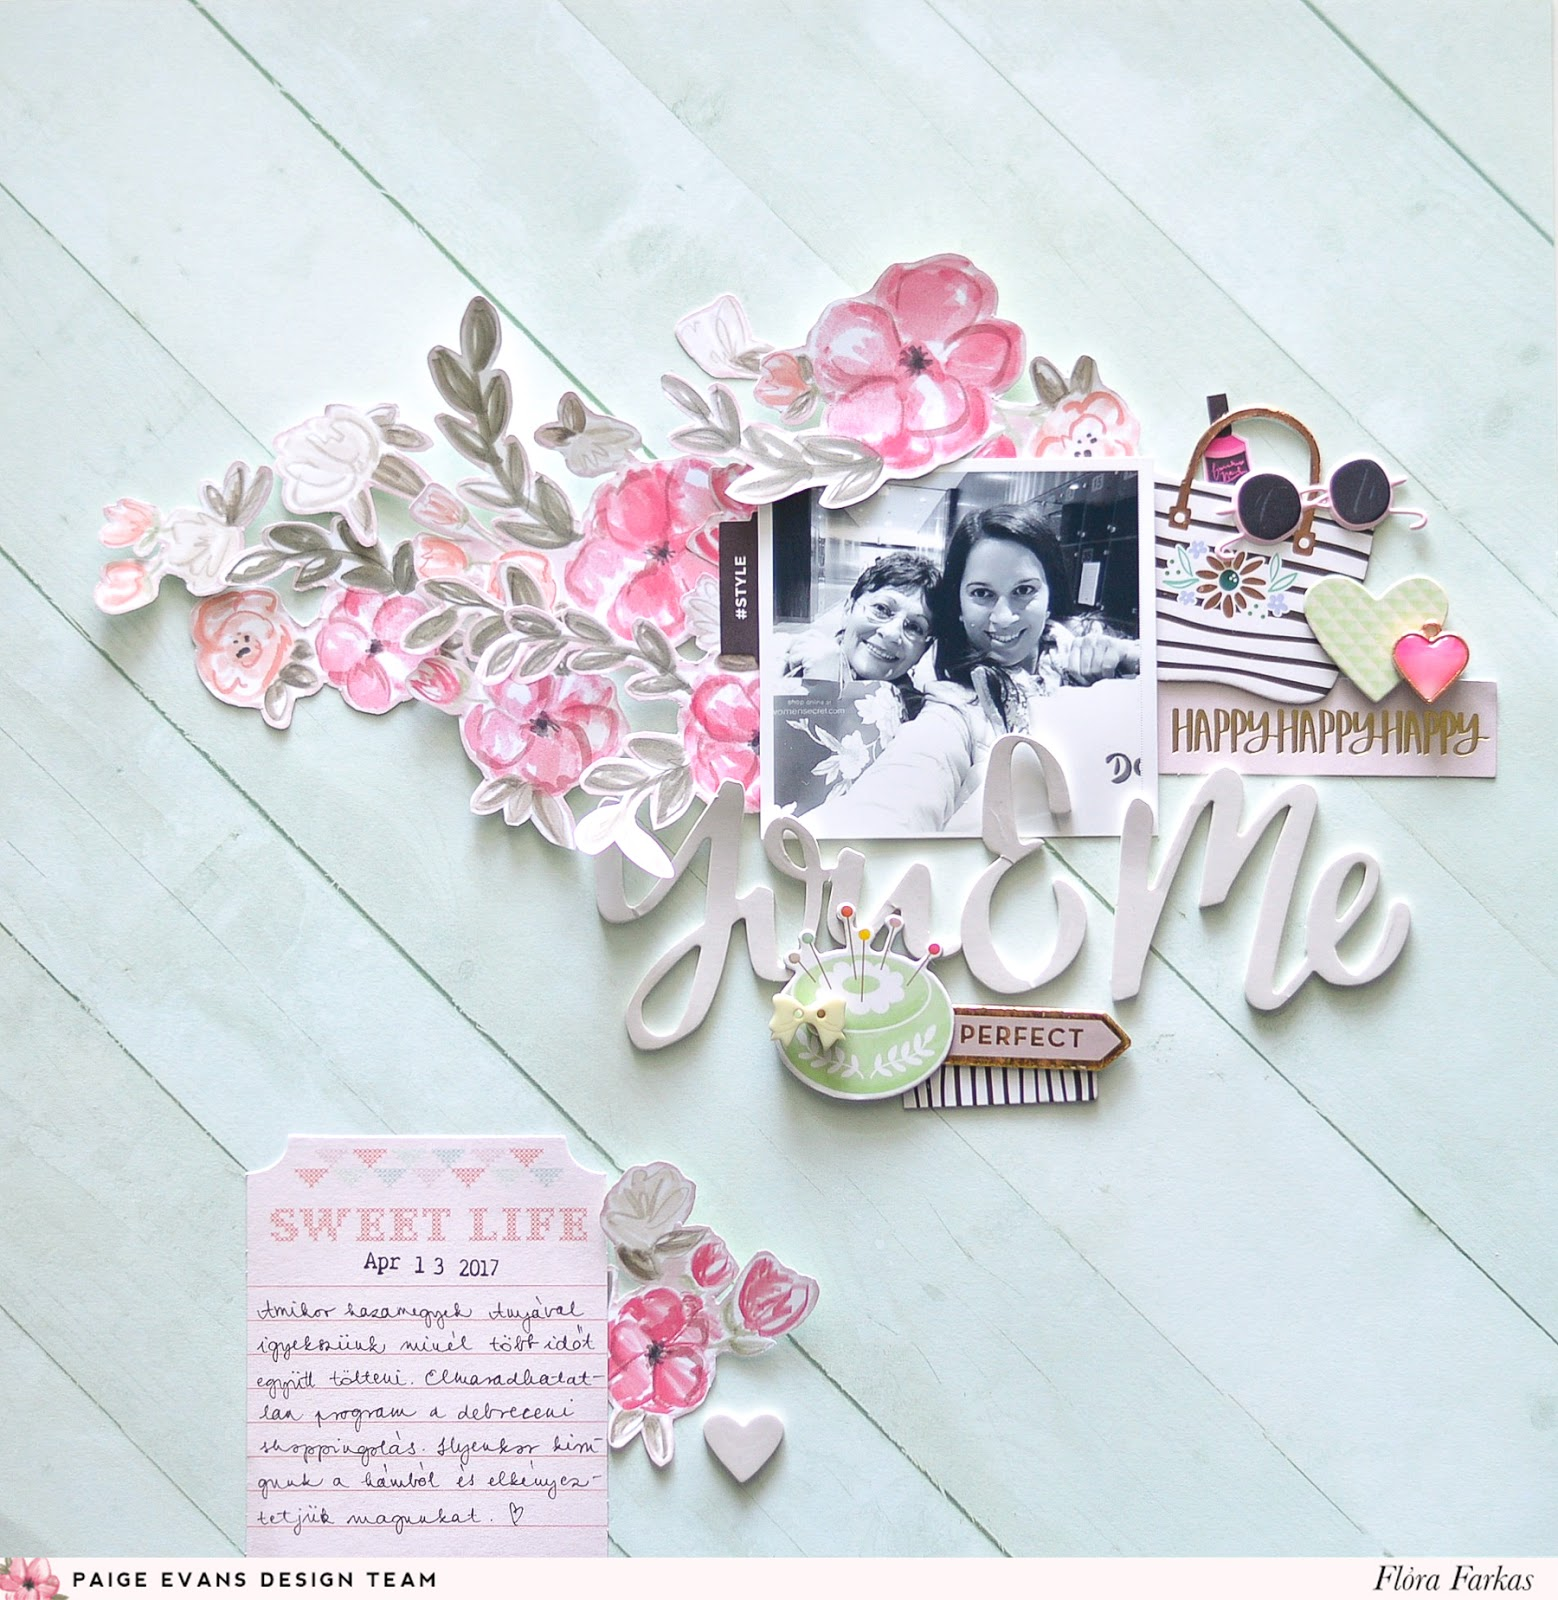 Mixing Pink Paislee Paige Evans Take Me Away and Oh My Heart collections by @floramfarkas .